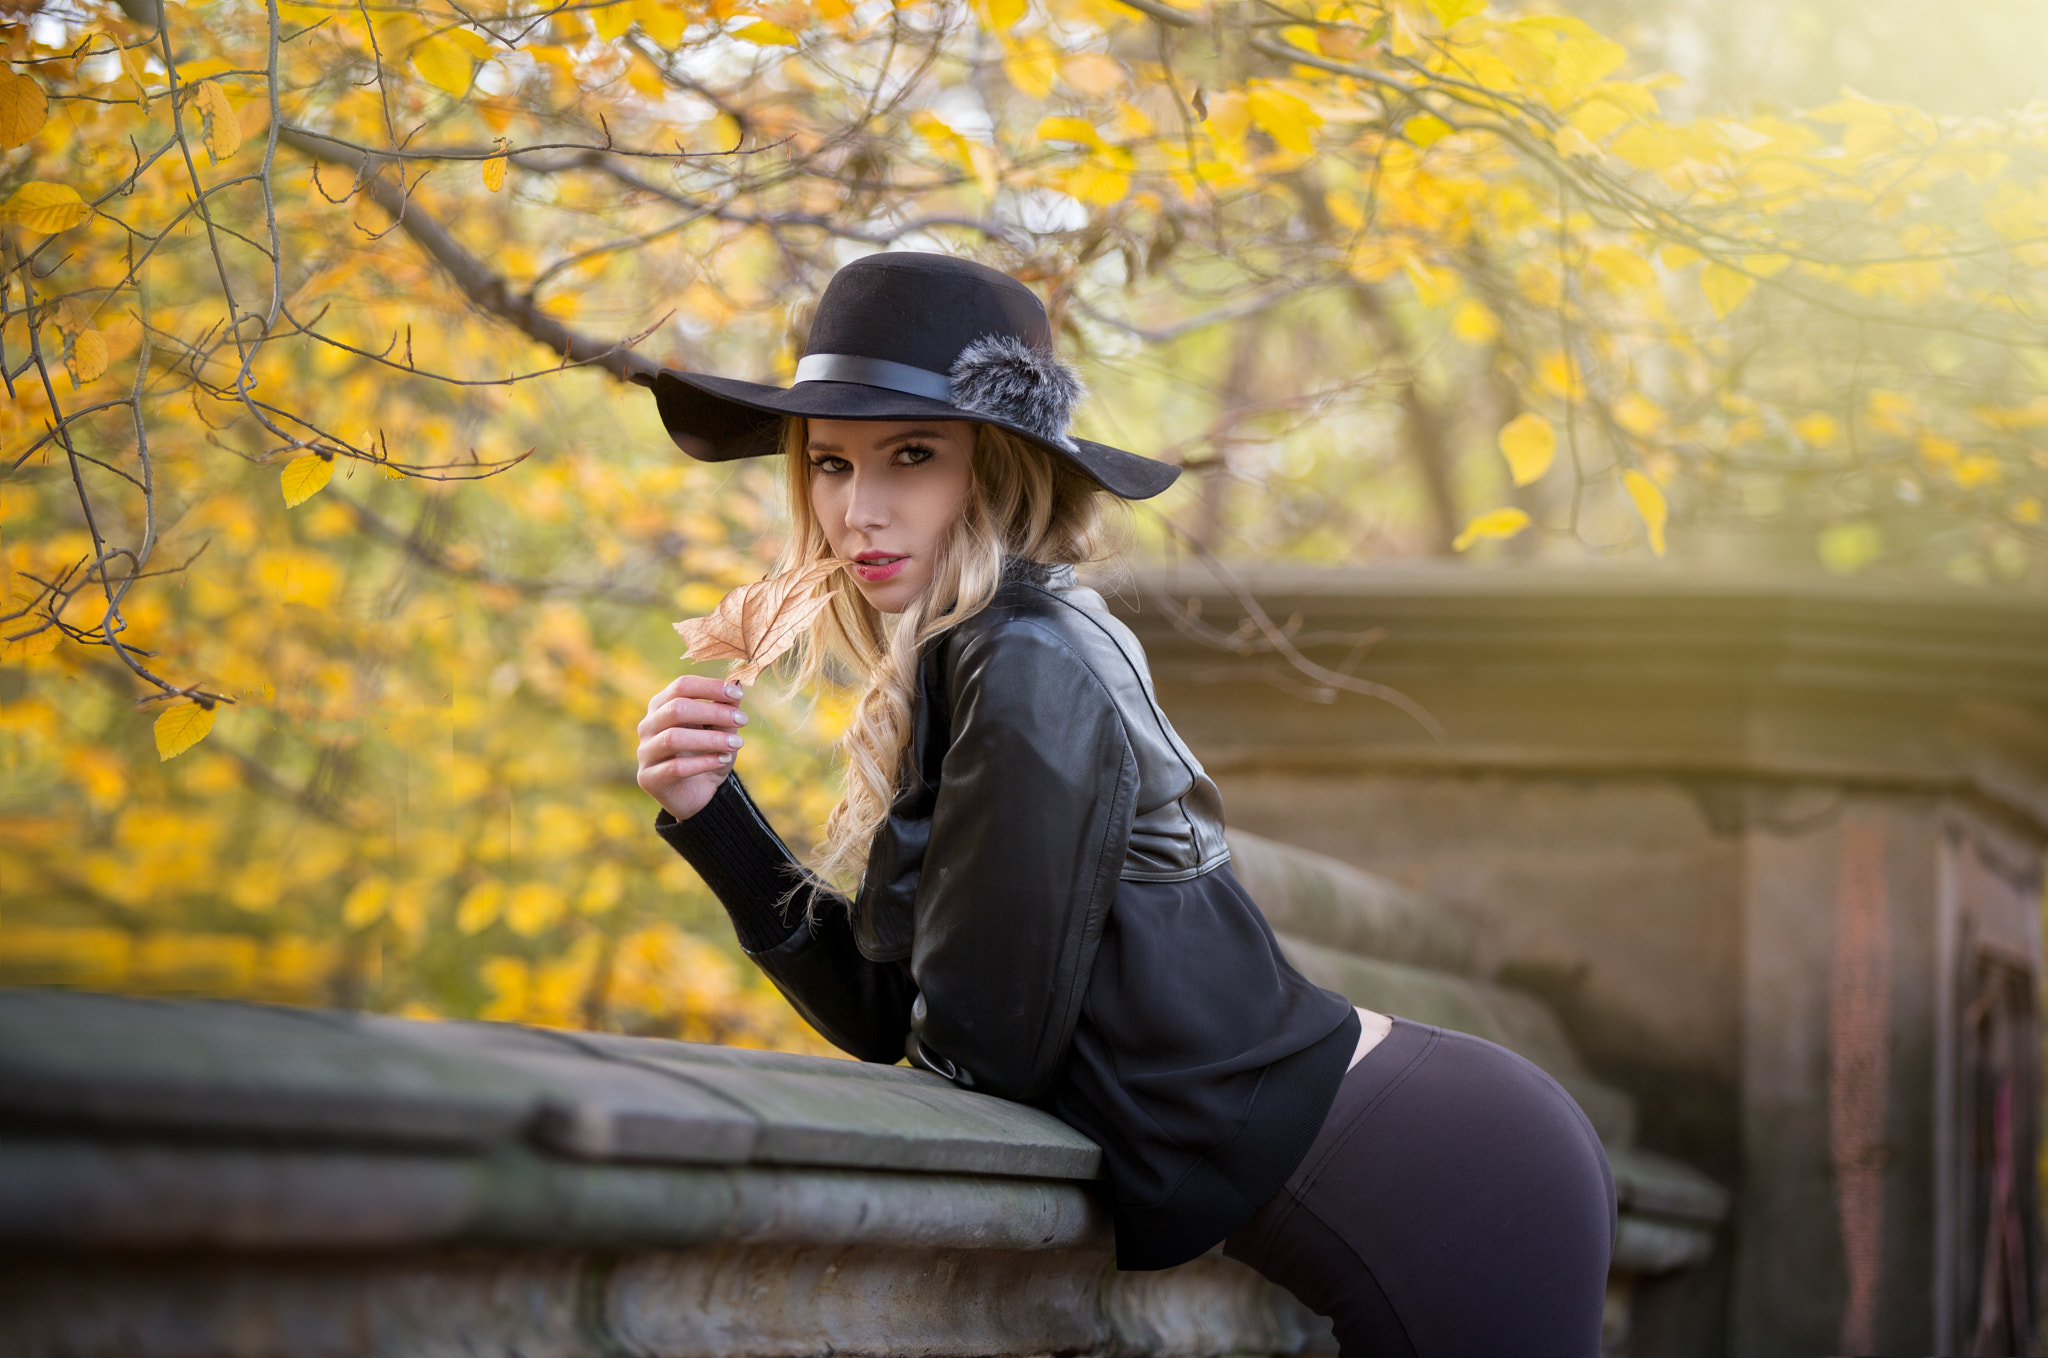 People 2048x1358 women hat blonde portrait leather jackets leaves women outdoors black clothing yoga pants